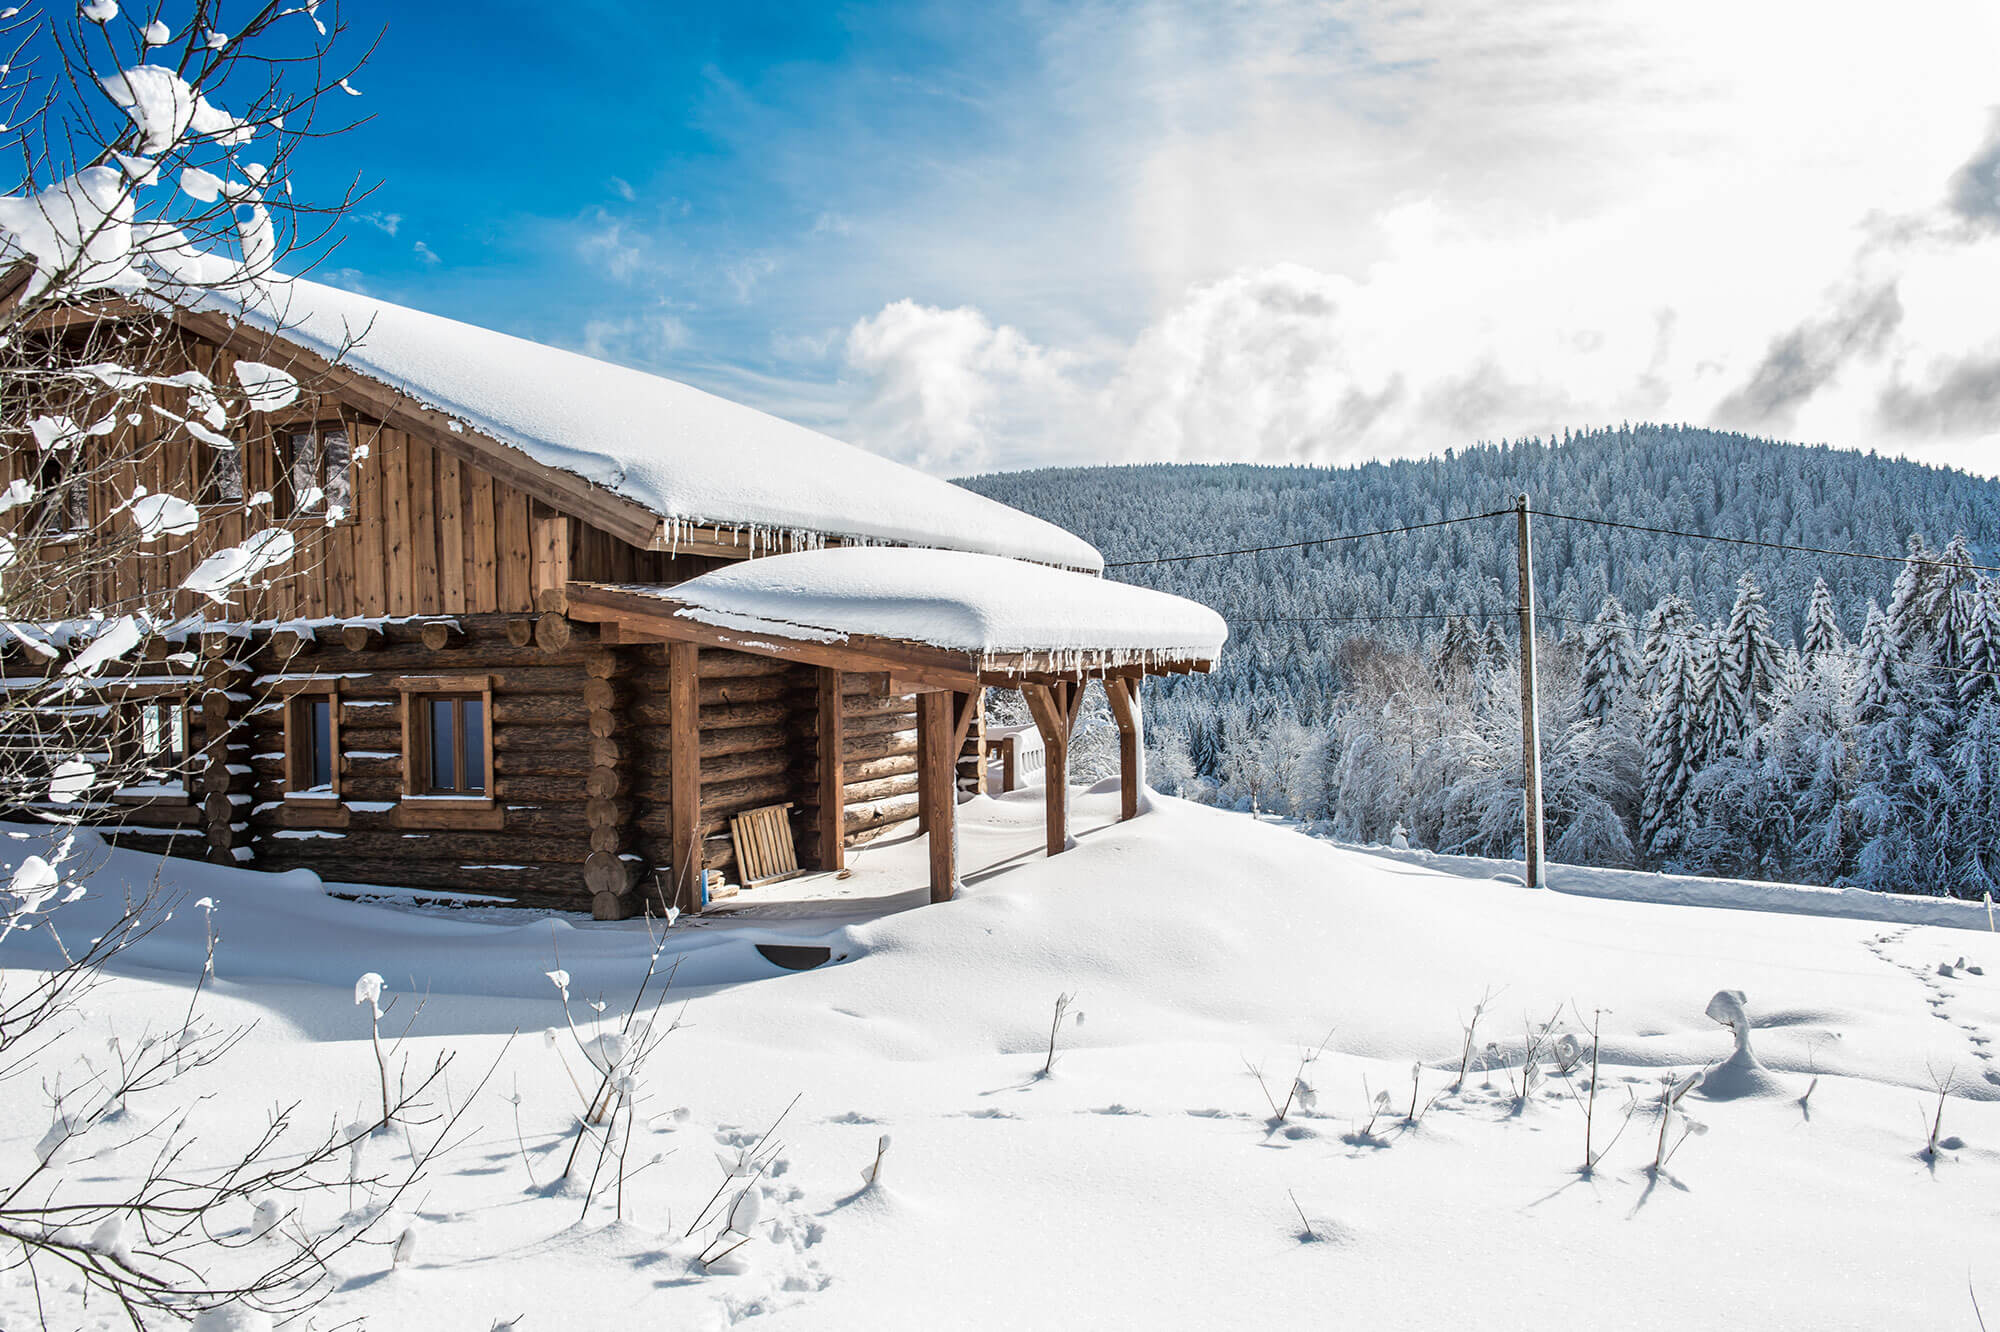 Chalet-Serenity-hiver-2015